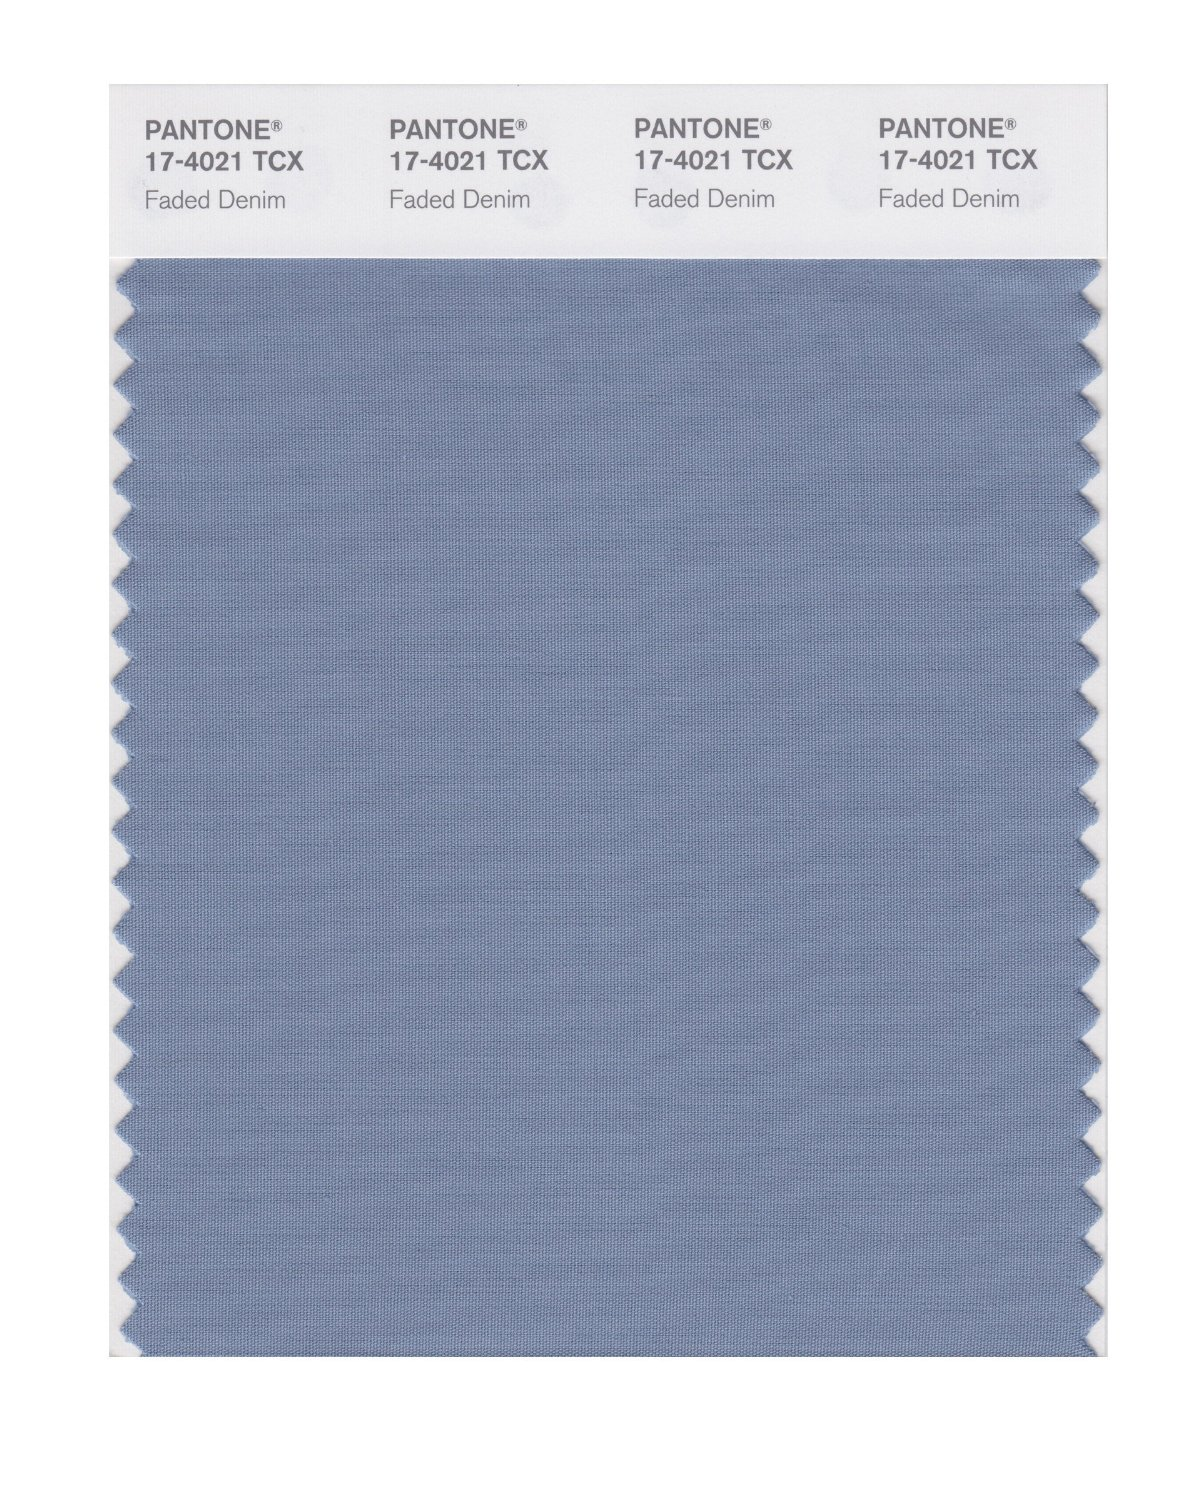 Pantone Smart Swatch 17-4021 Faded Denim